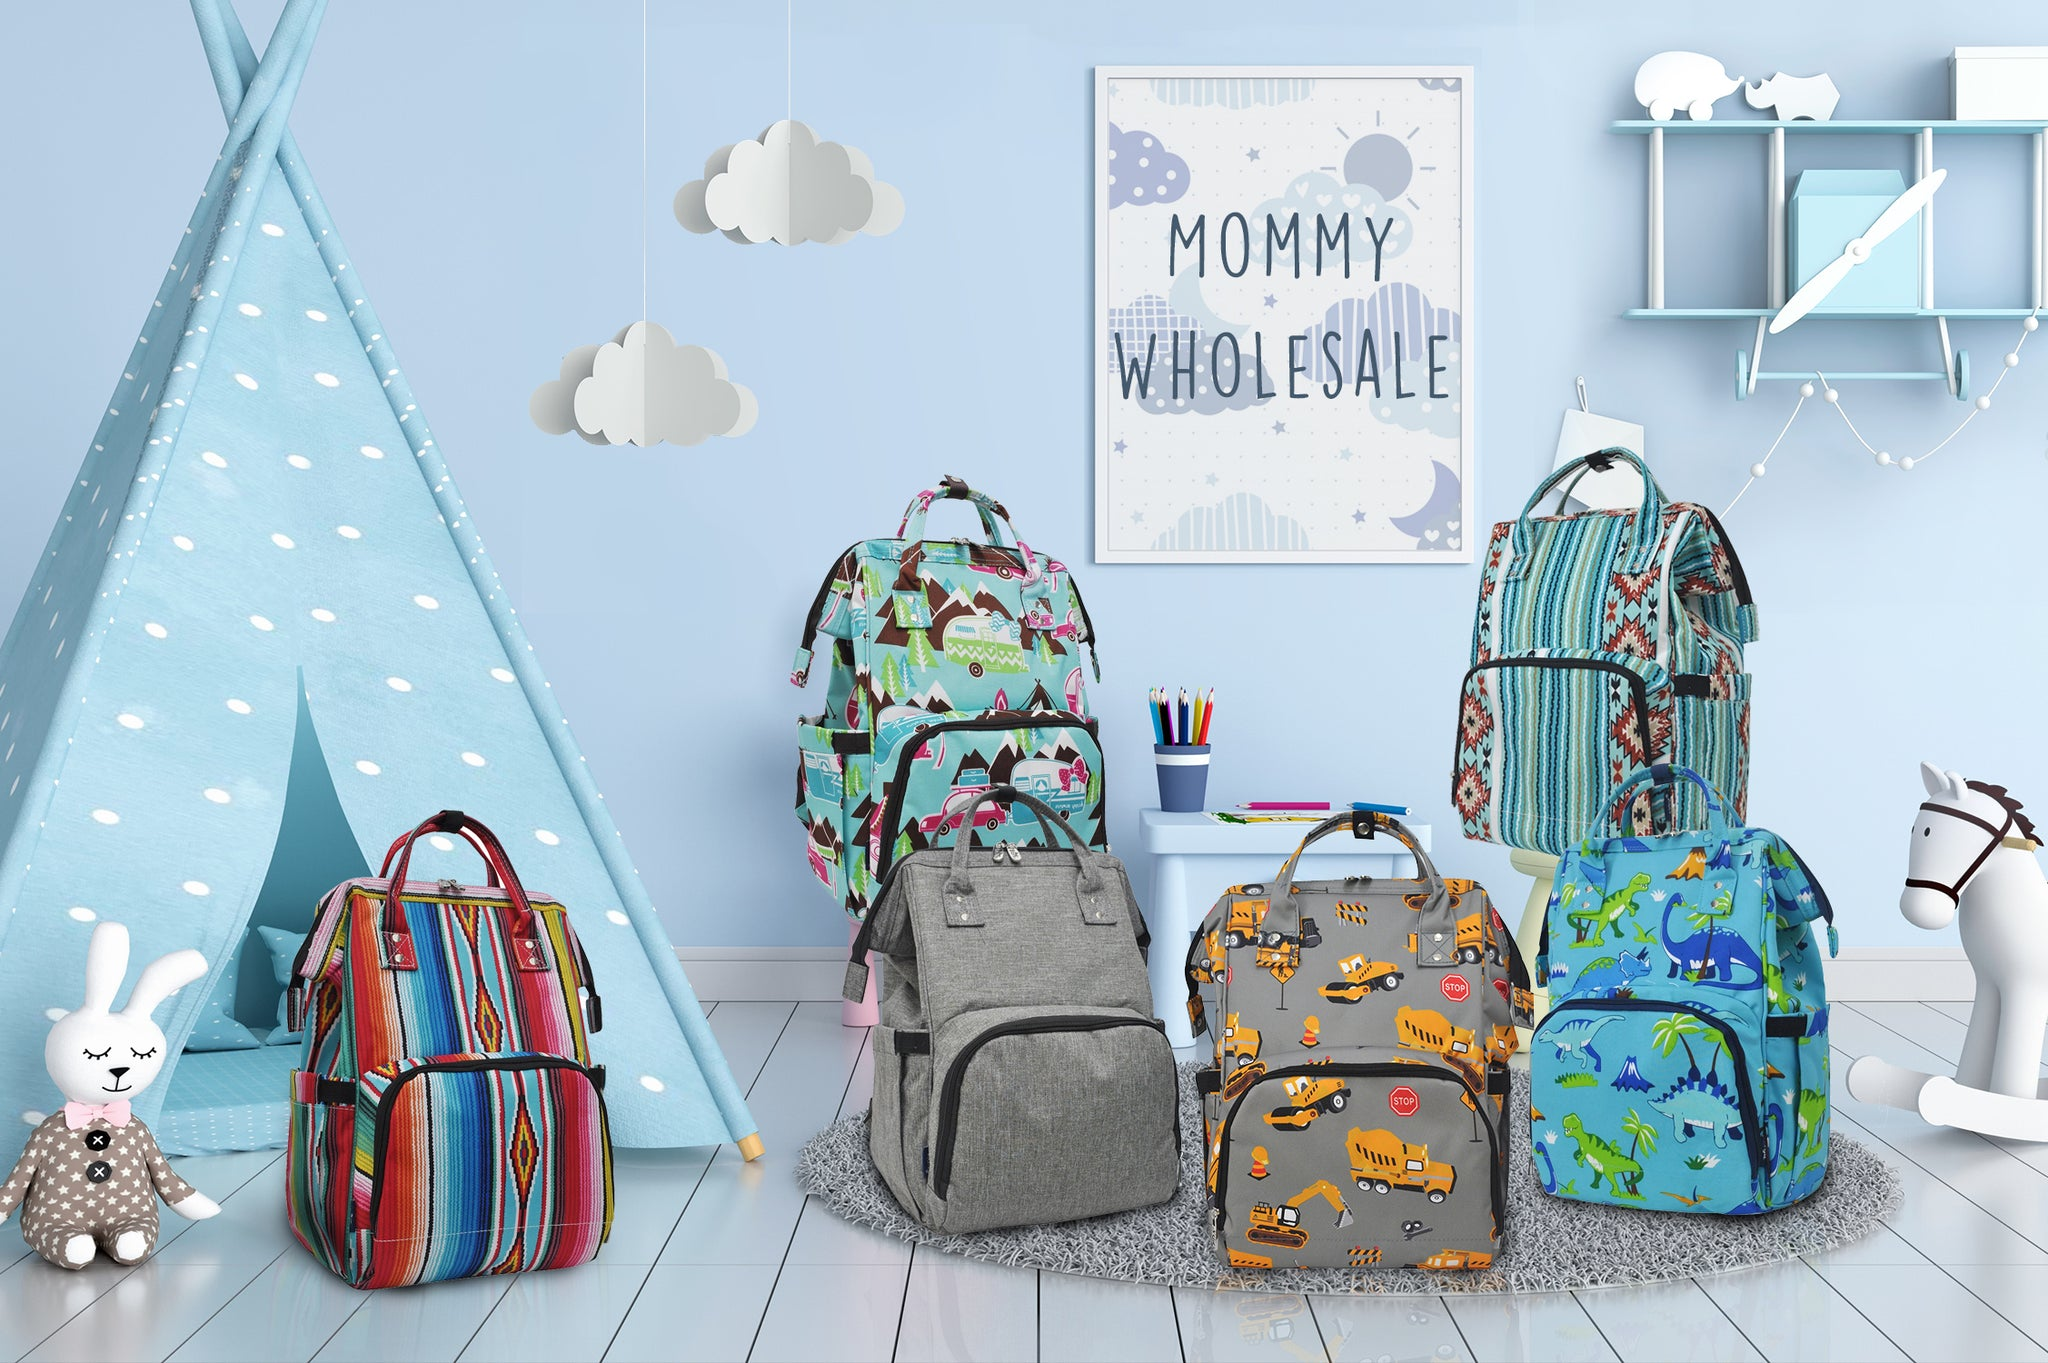 NGIL wholesale diaper bags, children bags, baby bags, diaper bags, toddler bags, insulated diaper bags, bottle bags, bags for strollers, canvas diaper bags, carry on travel diaper bag, affordable diaper bag, diaper bags for boutique, bulk diaper bags